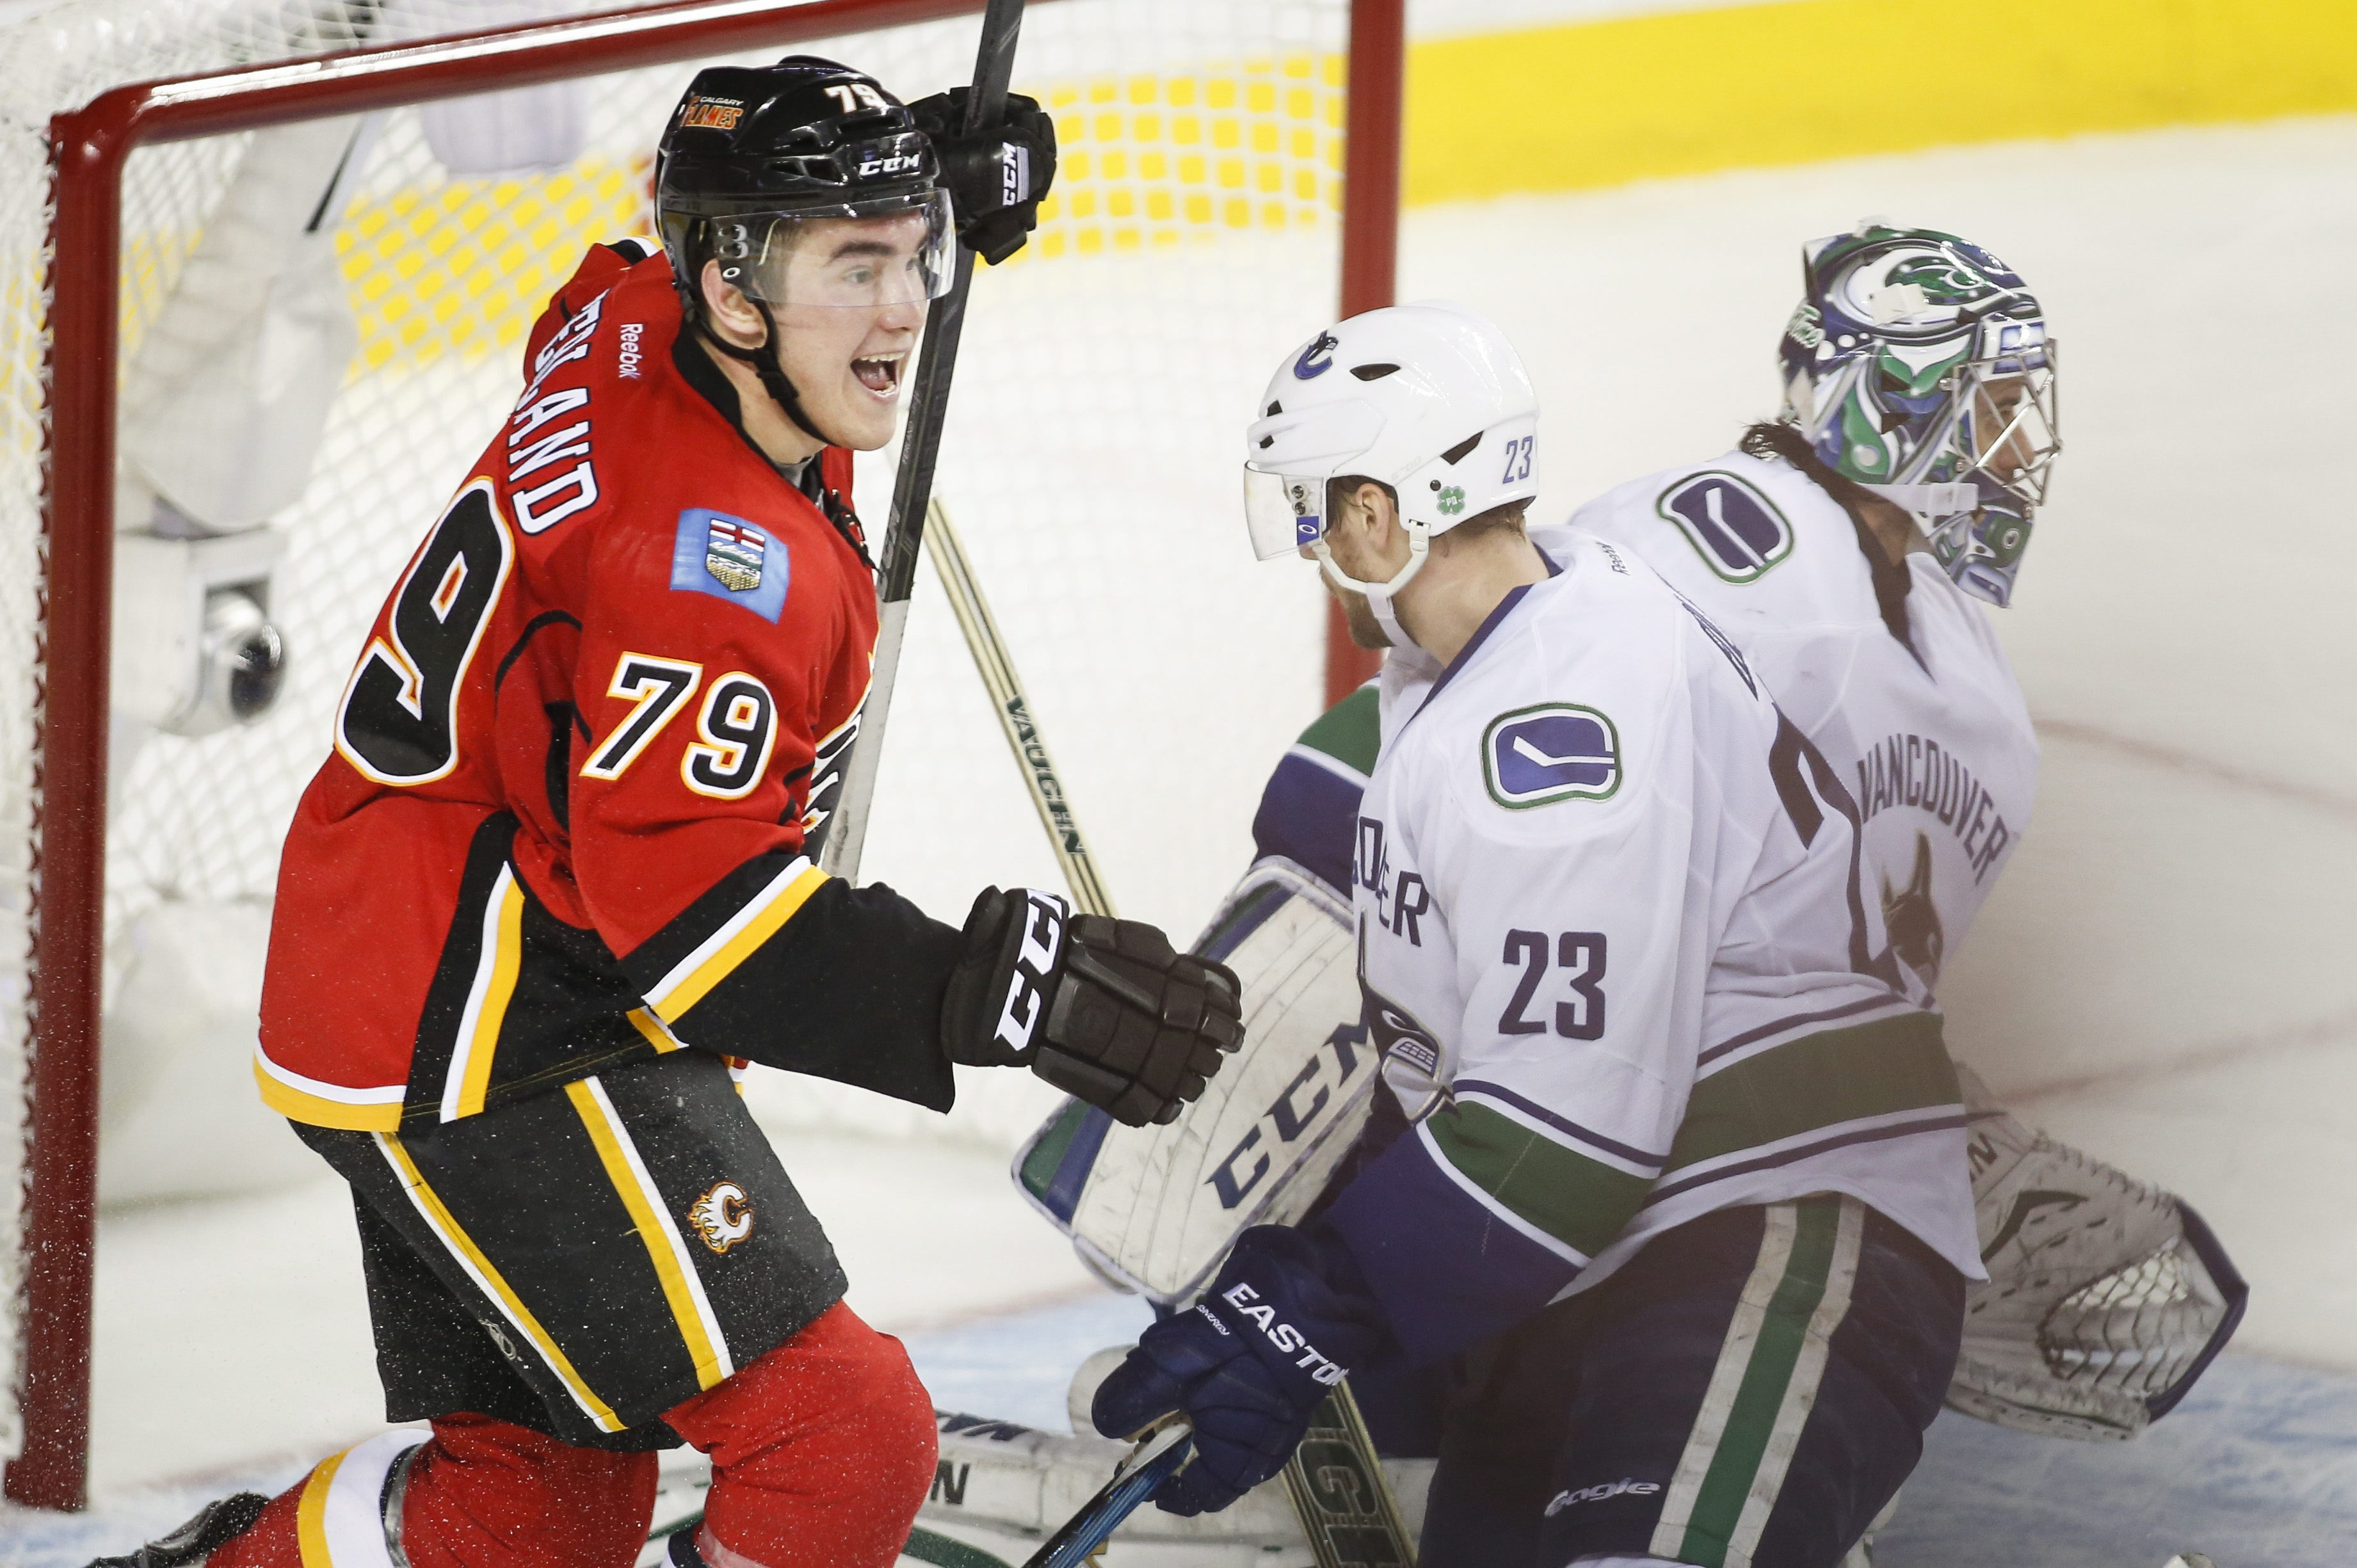 Flames beat Canucks 7-4 to advance in Stanley Cup playoffs